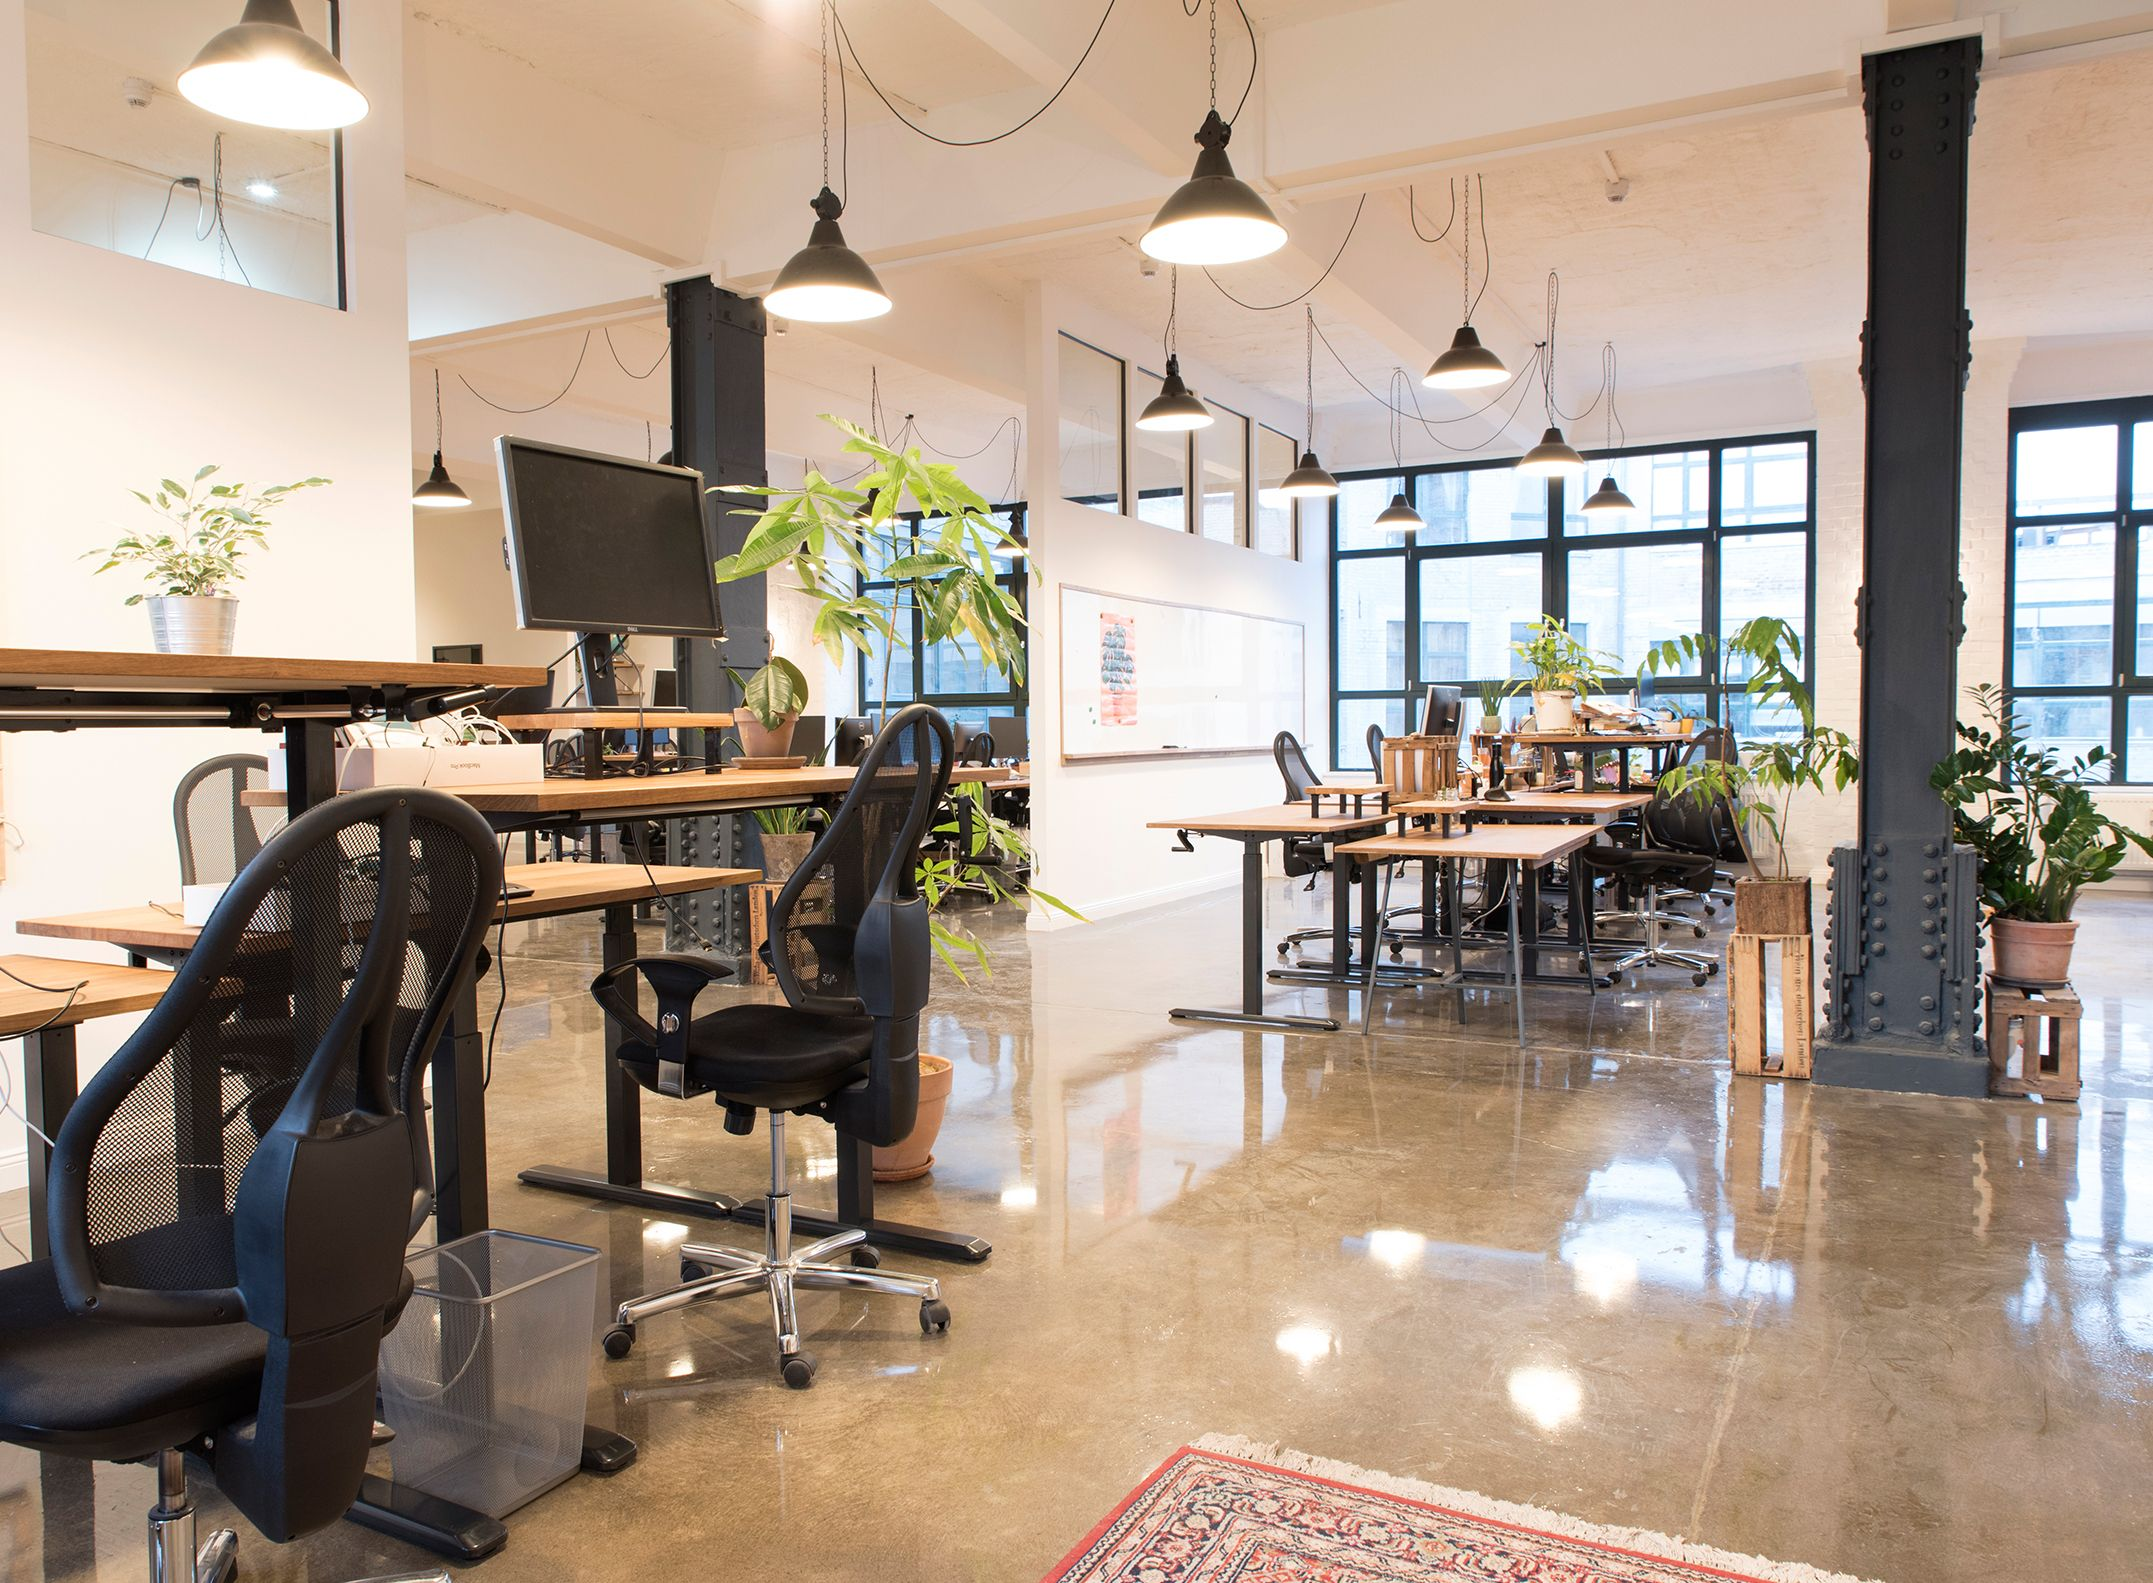 The office is large, spacious and bright with industrial design